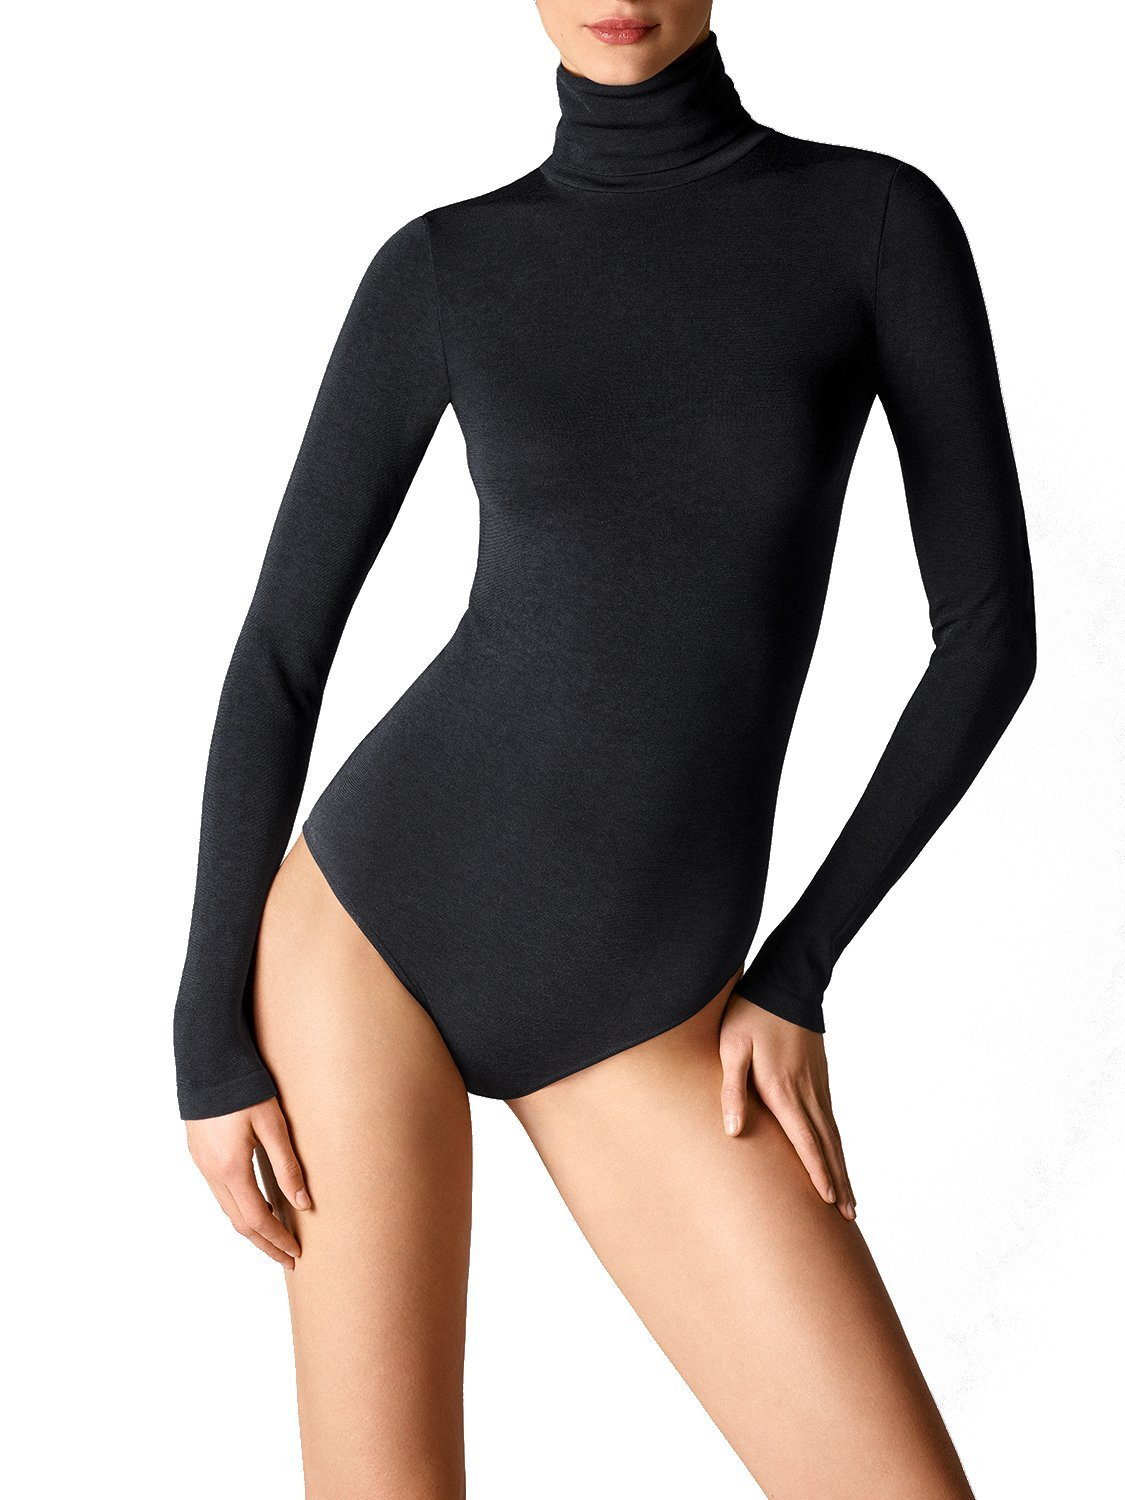 Wolford Women's Colorado Bodysuit Black X-Small